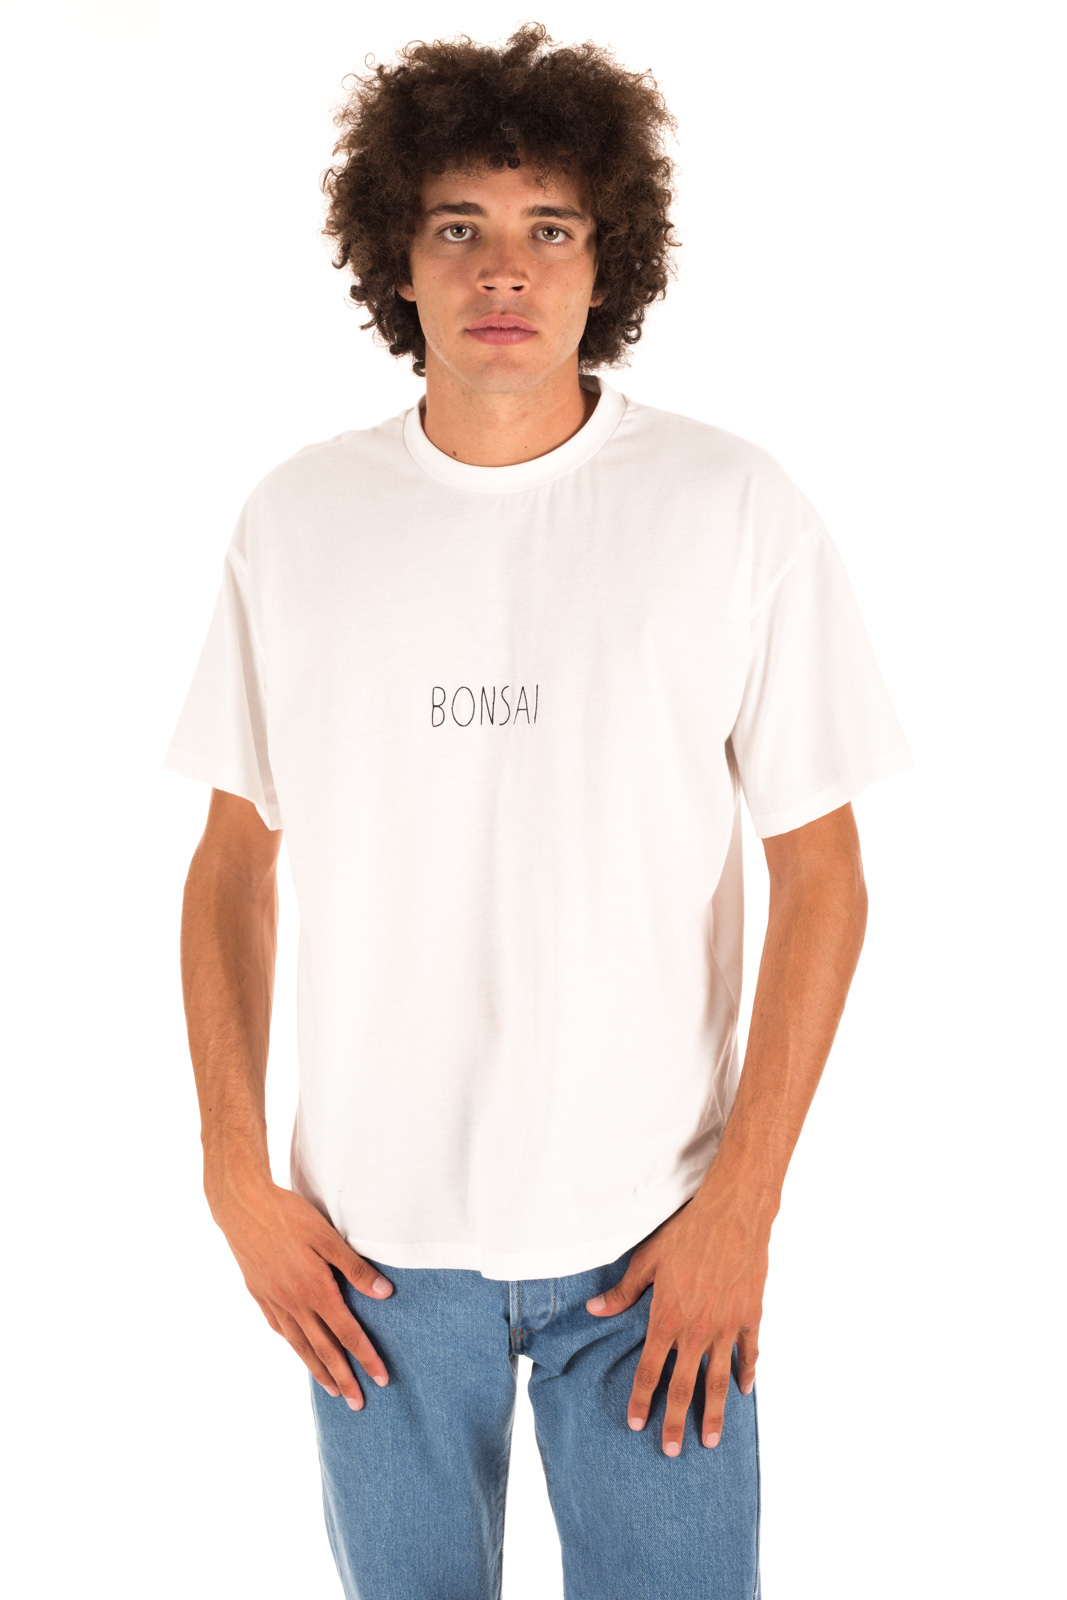 Bonsai - T shirt Logo White